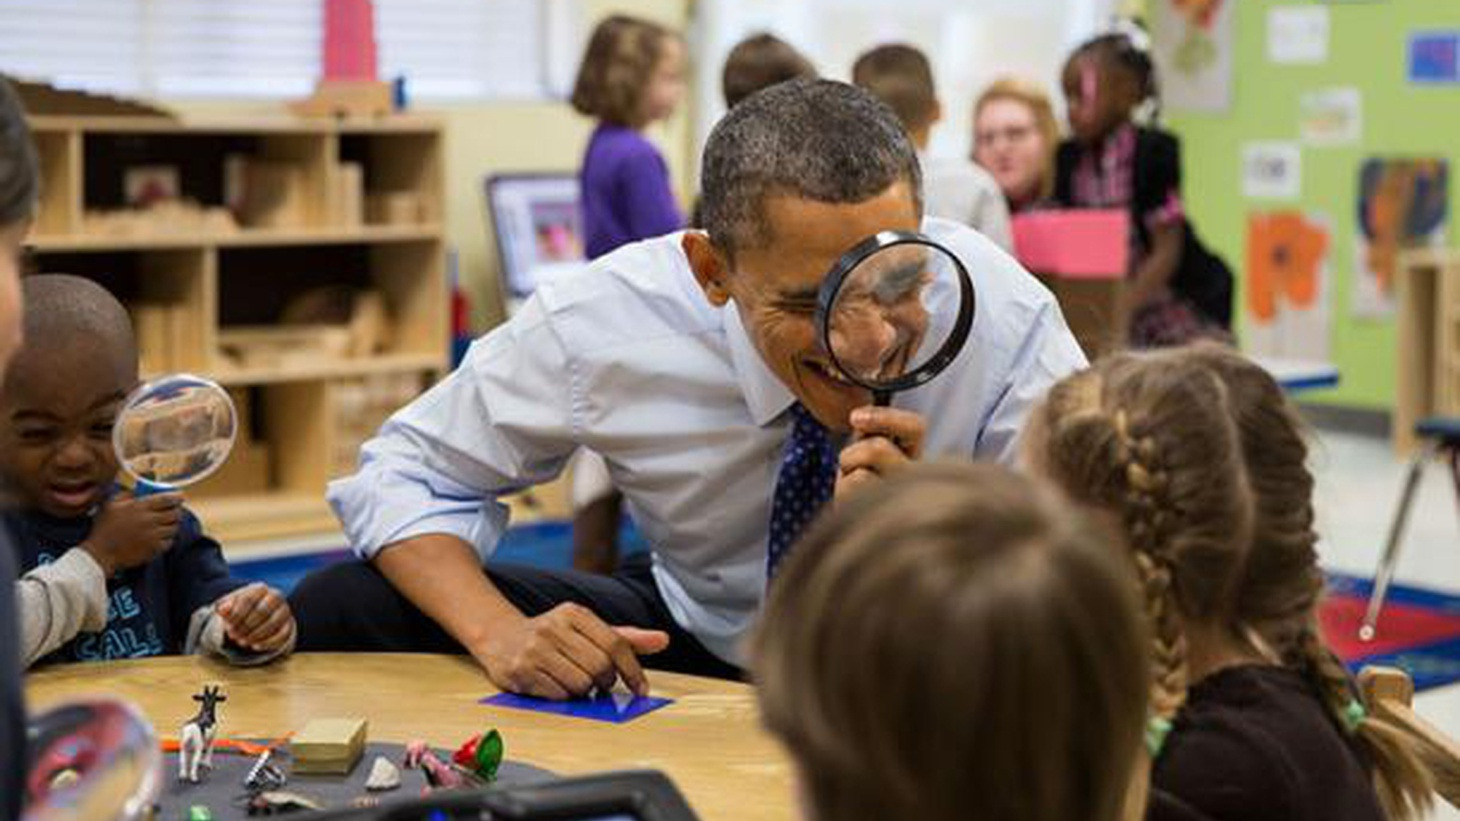 President Obama wants pre-school education for every child in America. Would that help break the poverty cycle? Are there other benefits to justify a new federal program?